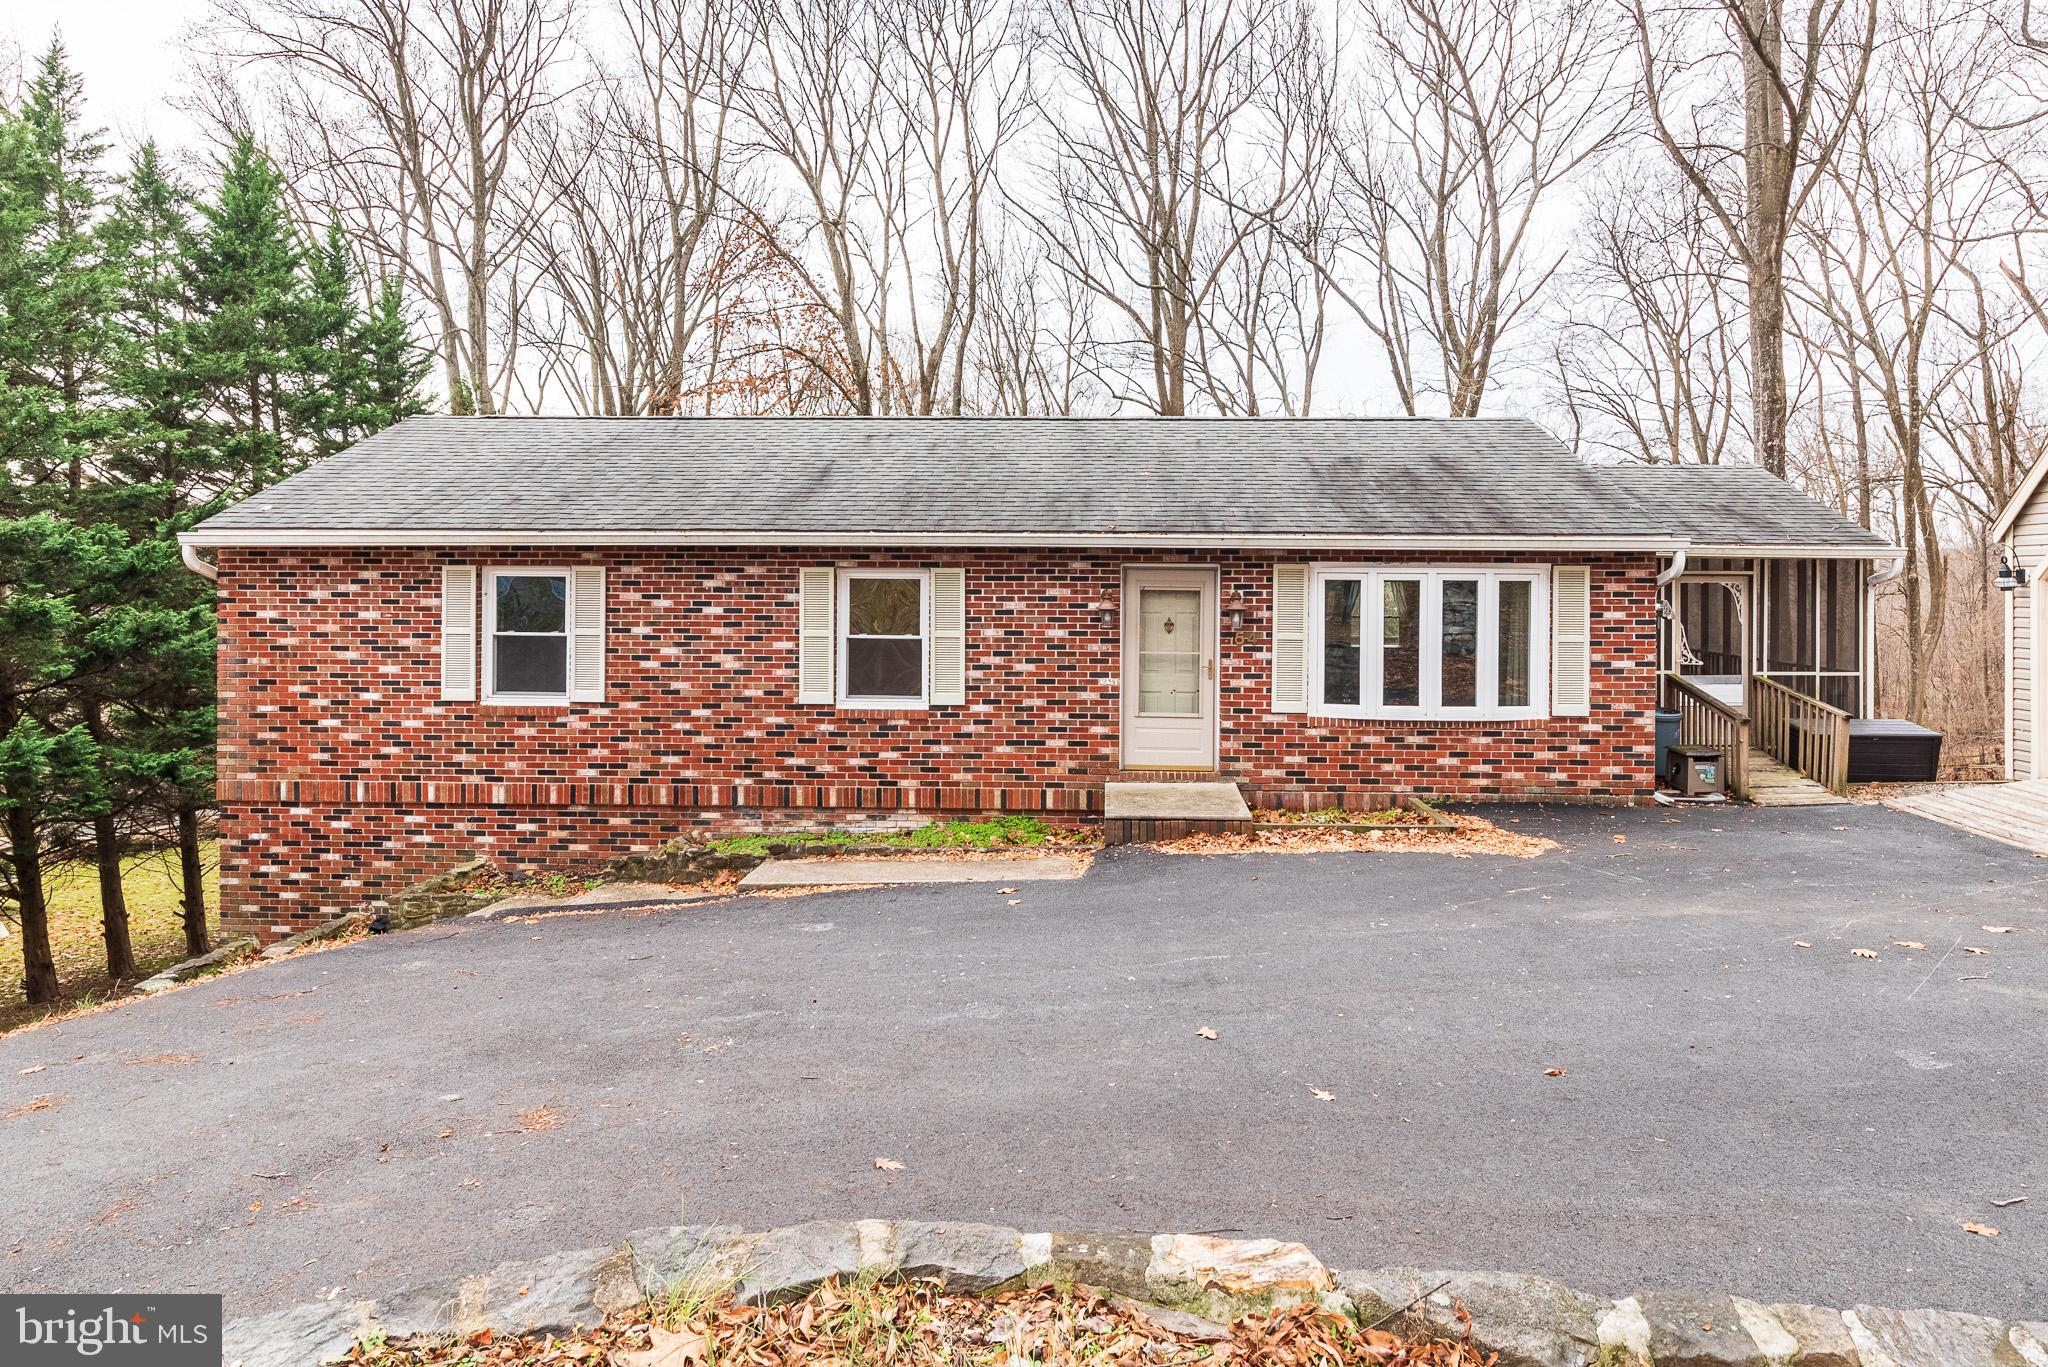 Lovely 3 bedroom/2 bathroom rancher in a quite neighborhood but near Route One for easy access to ne